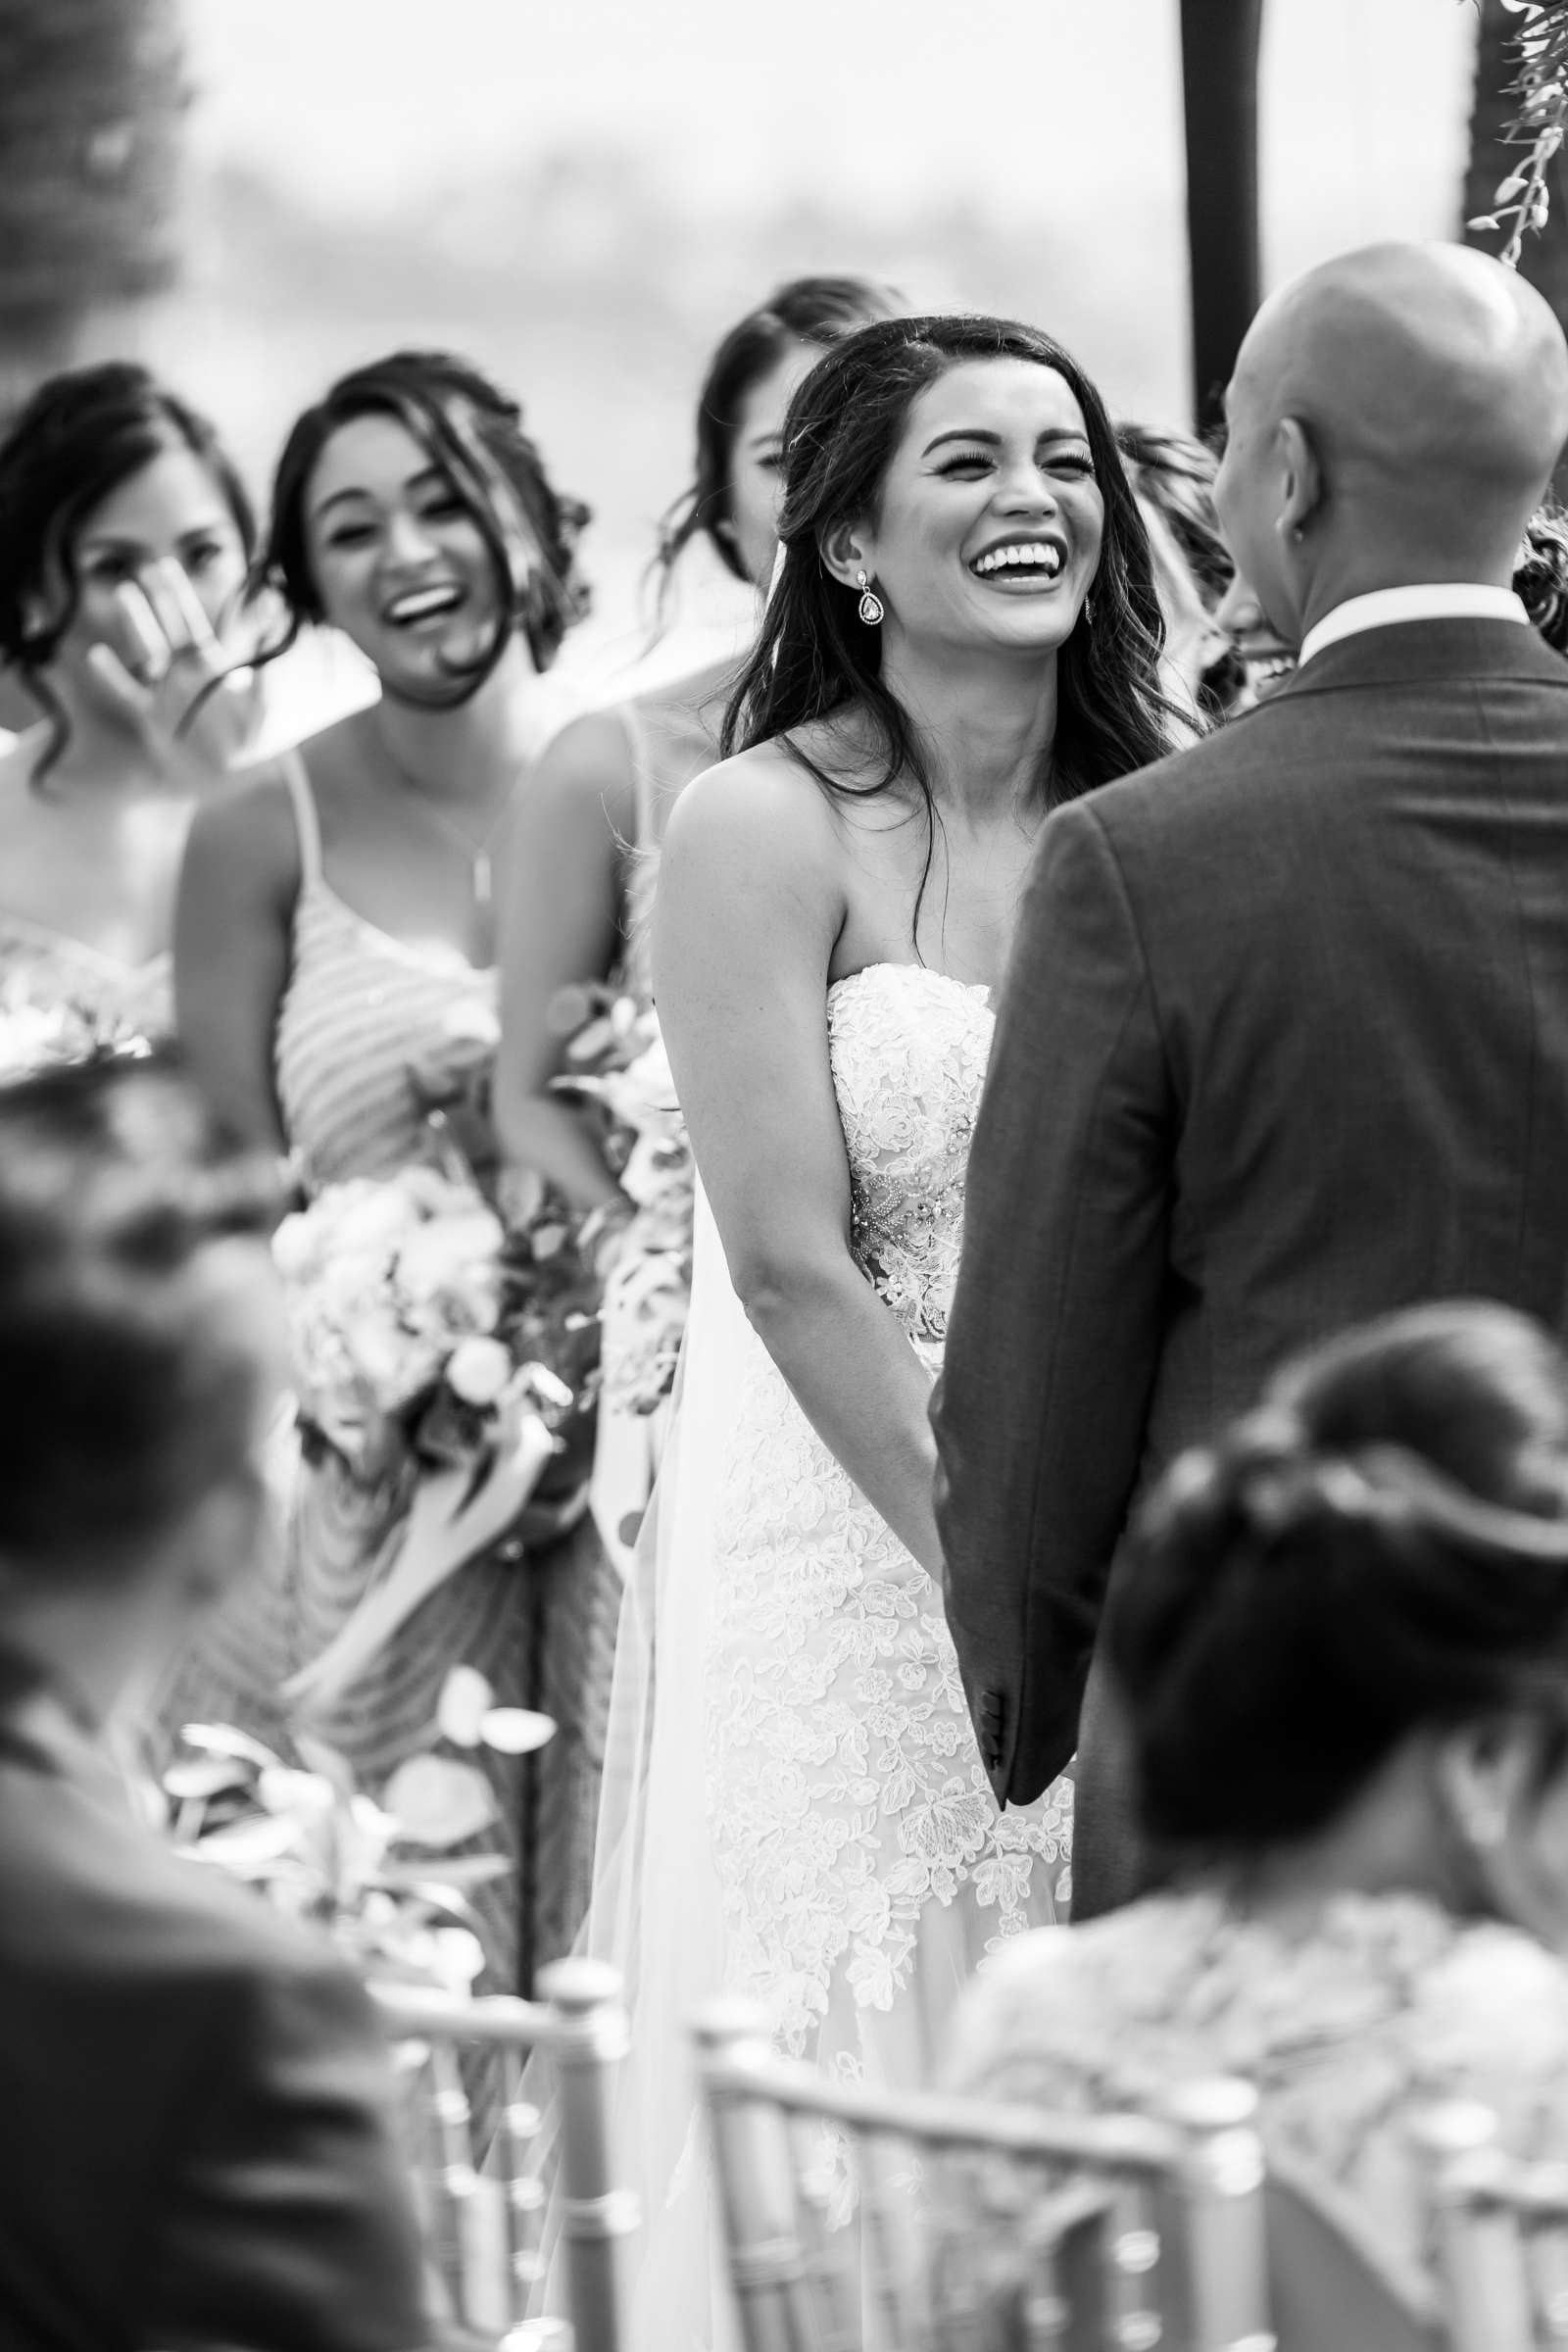 Scripps Seaside Forum Wedding coordinated by Lavish Weddings, Cindy and Justin Wedding Photo #381830 by True Photography